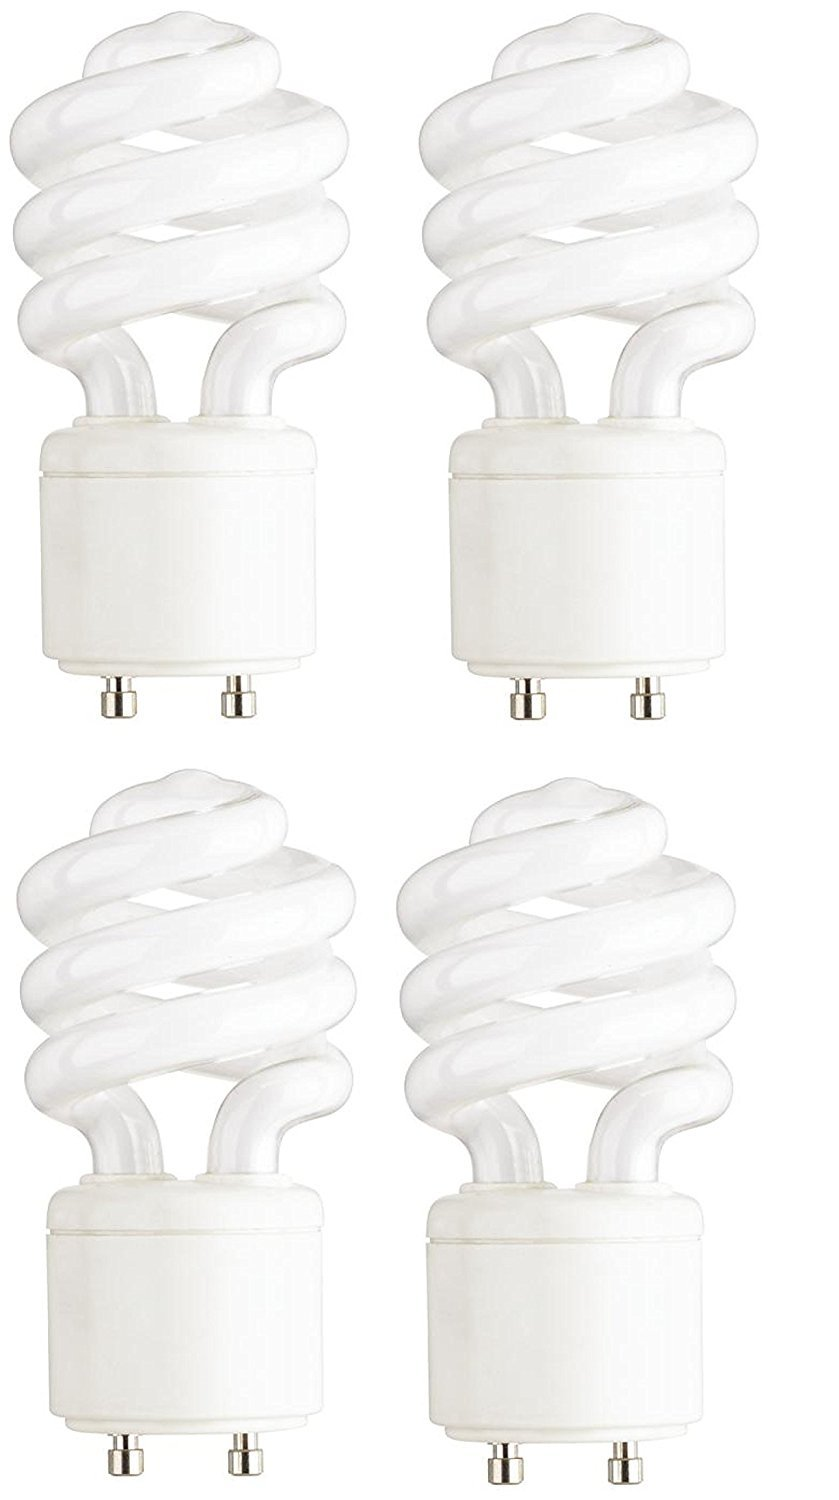 Dysmio Lighting - Mini-Twist CFL Light Bulb 60 Watt Equivalent 2700K (4-Pack)